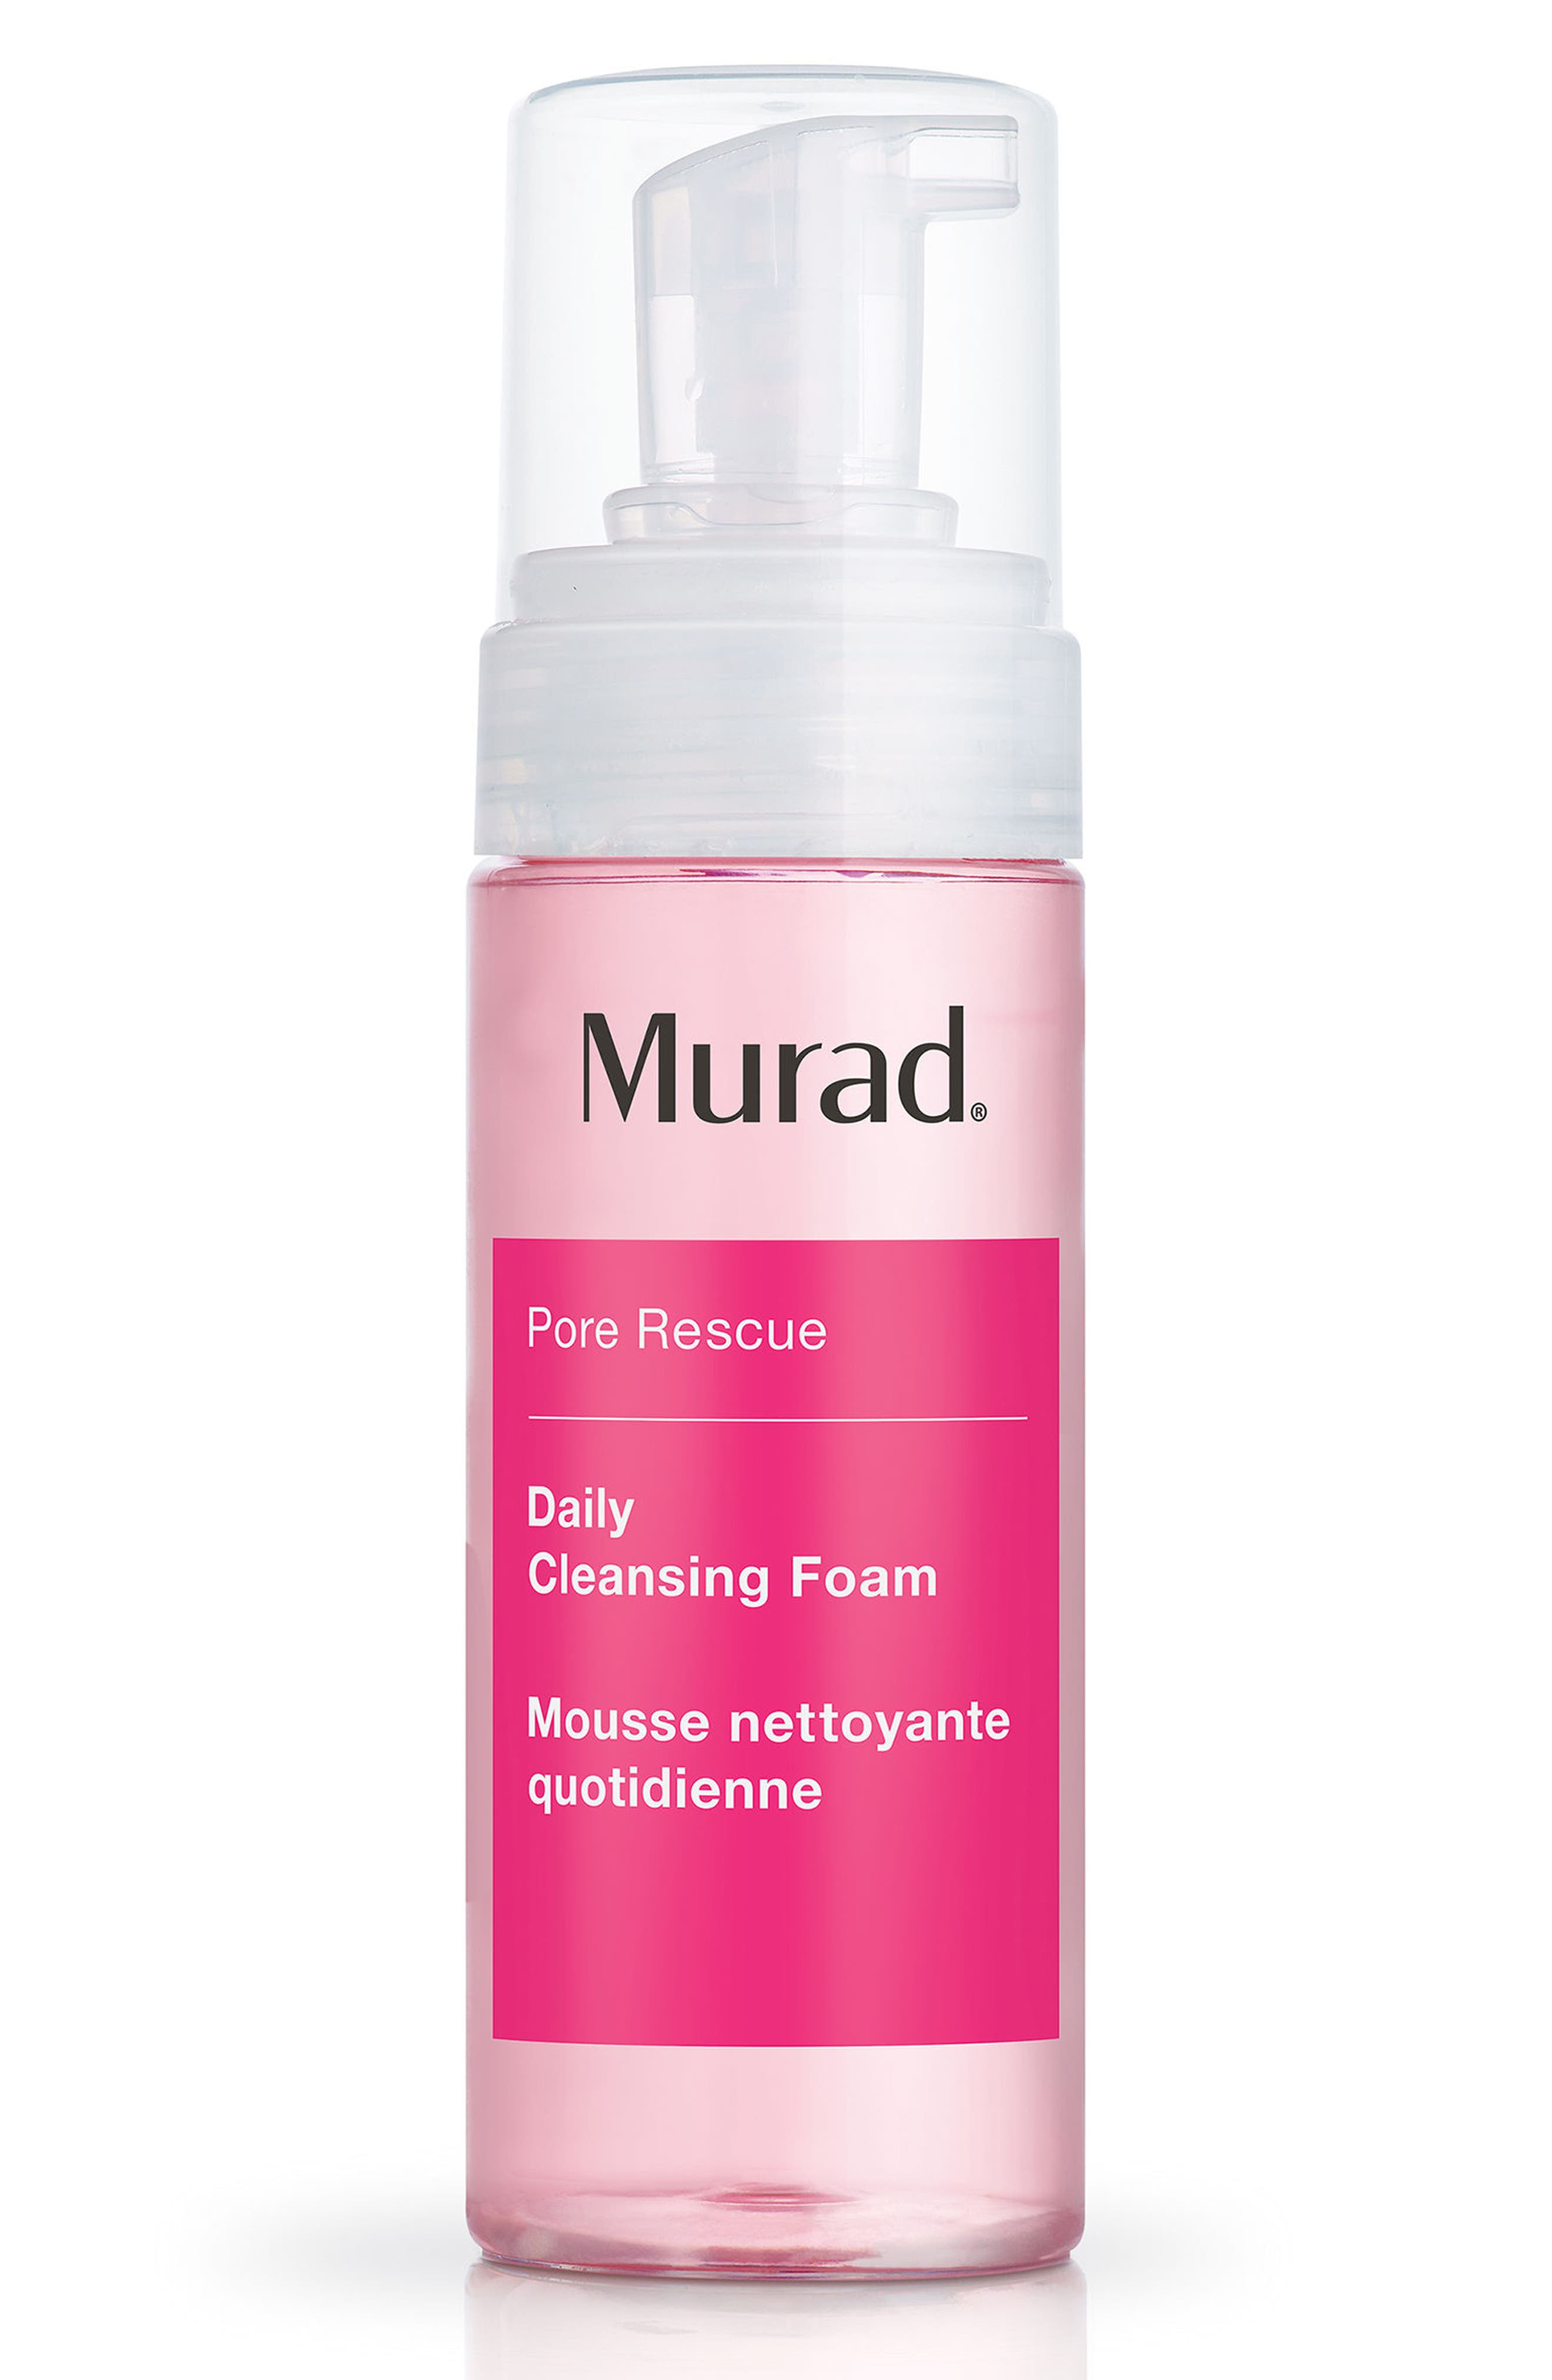 Murad® Daily Cleansing Foam